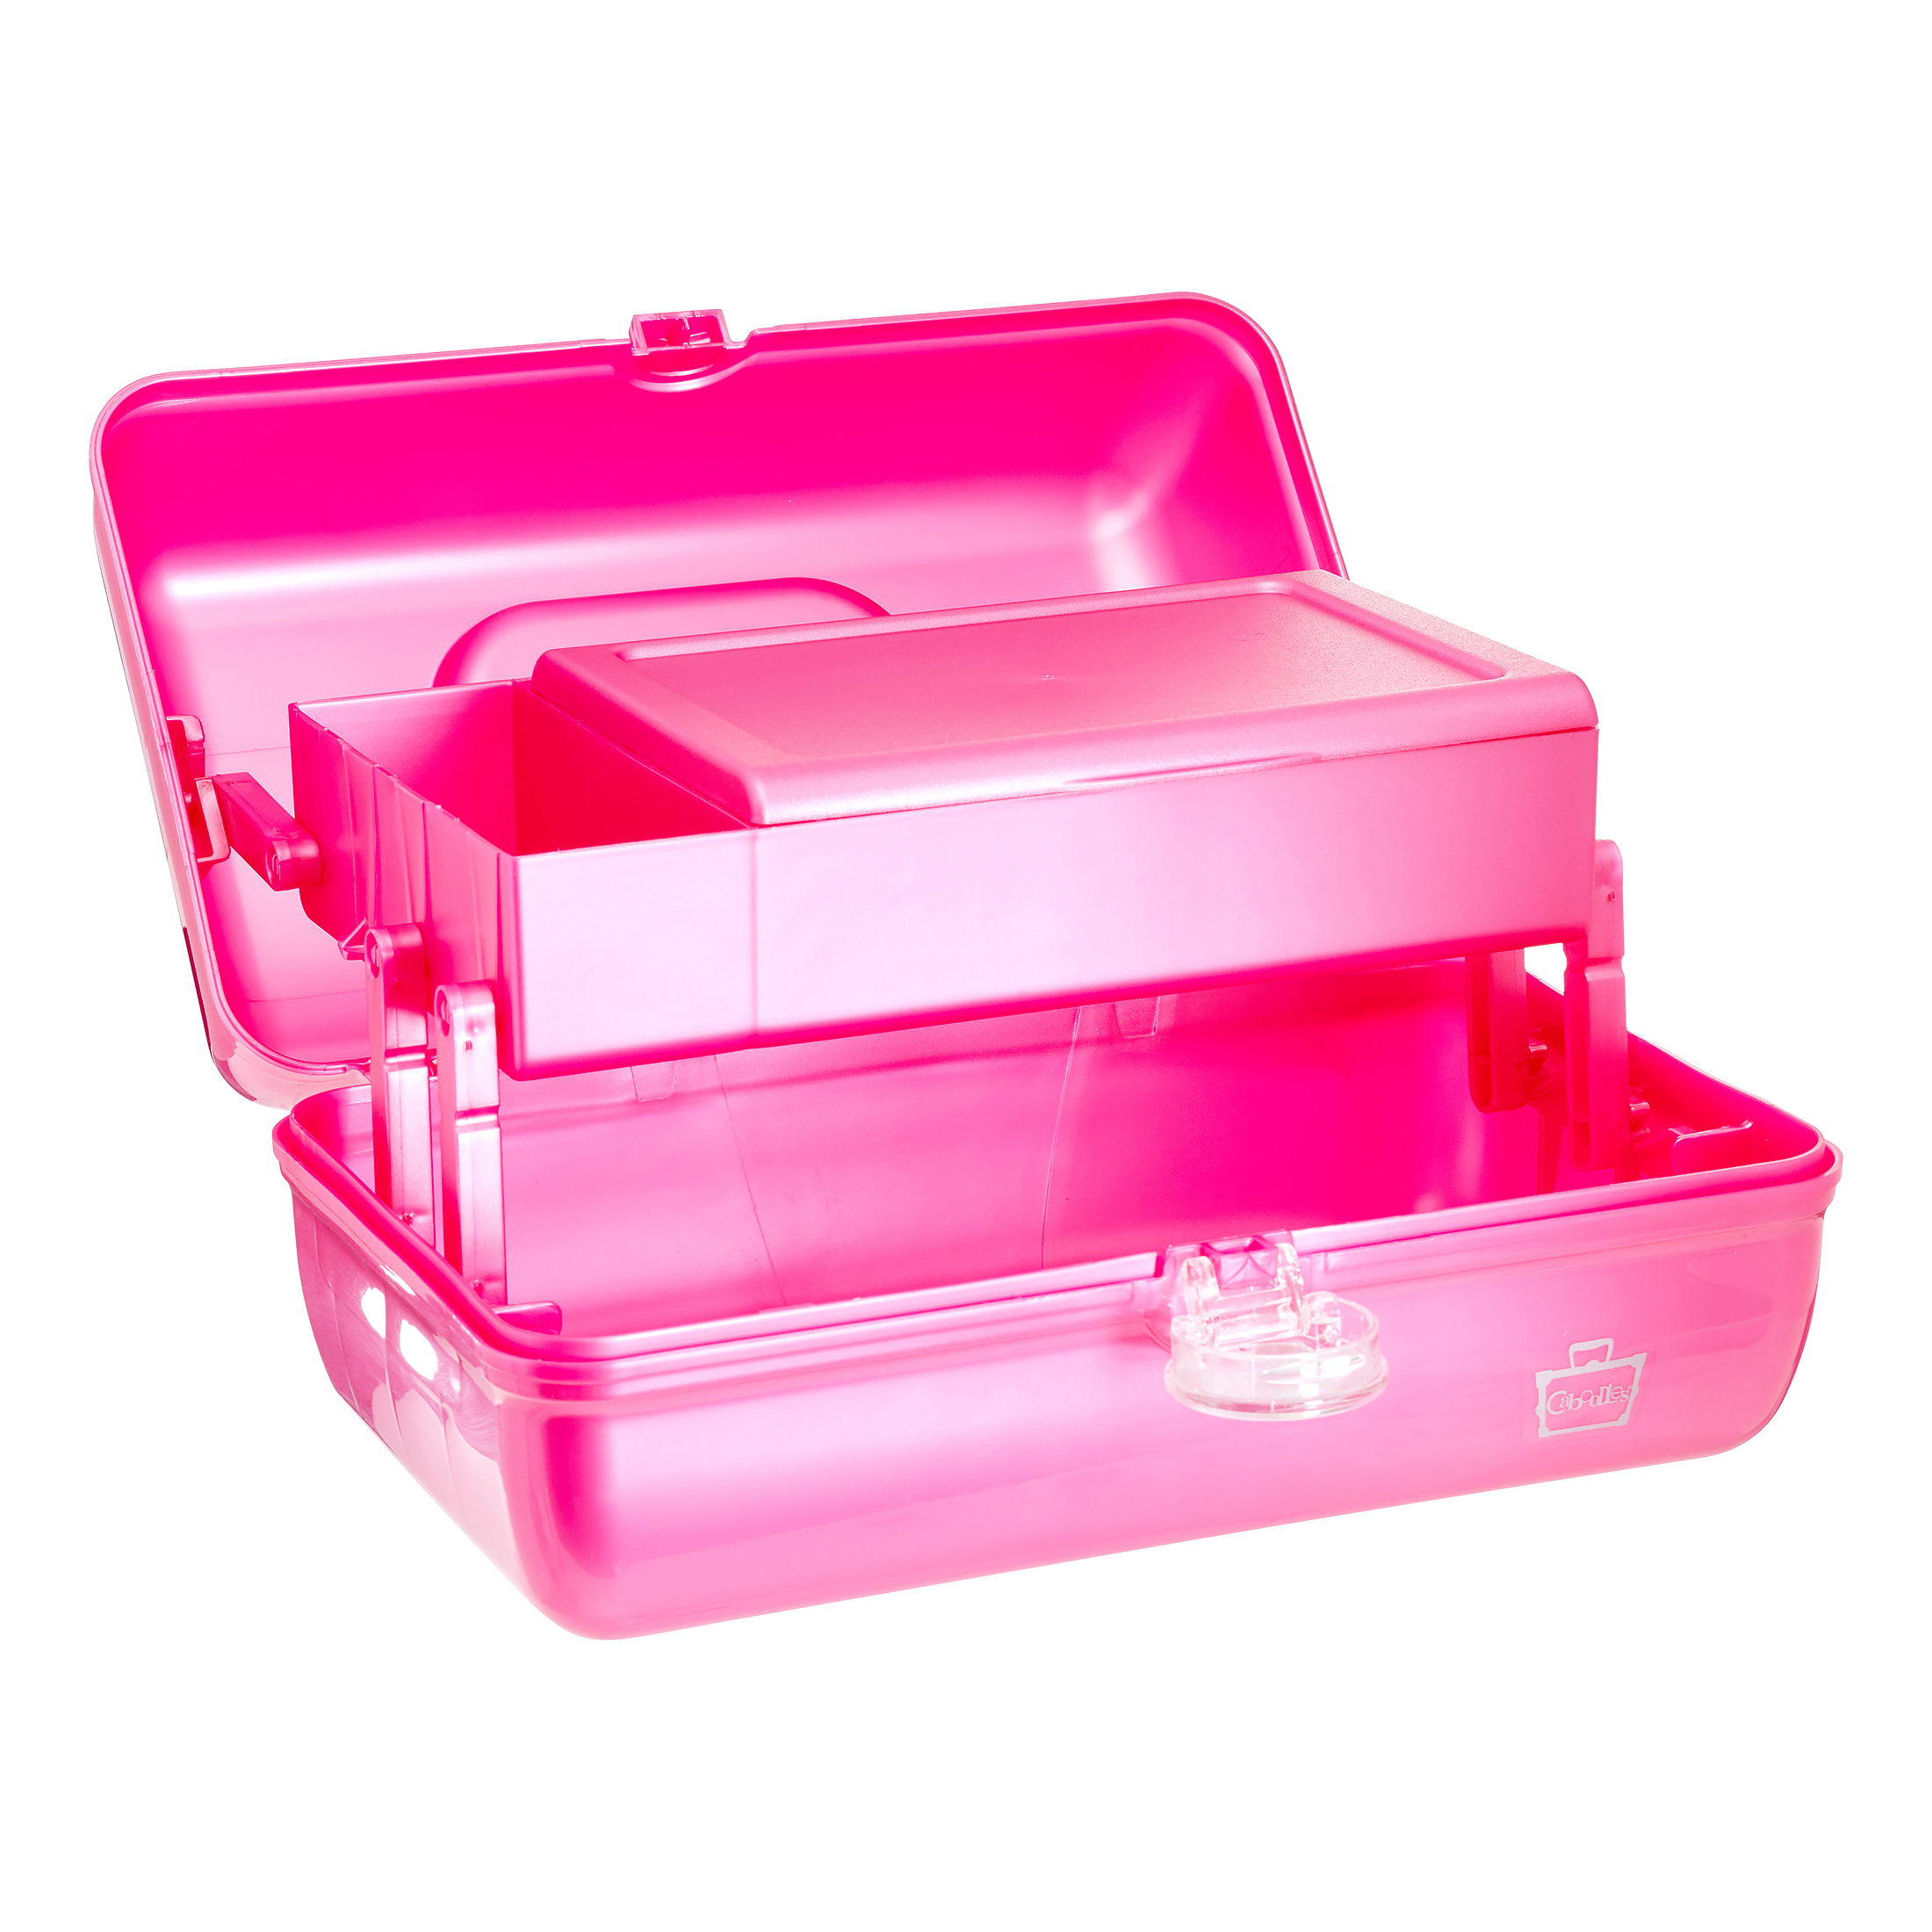 Caboodles On-The-Go Girl Classic Makeup Case